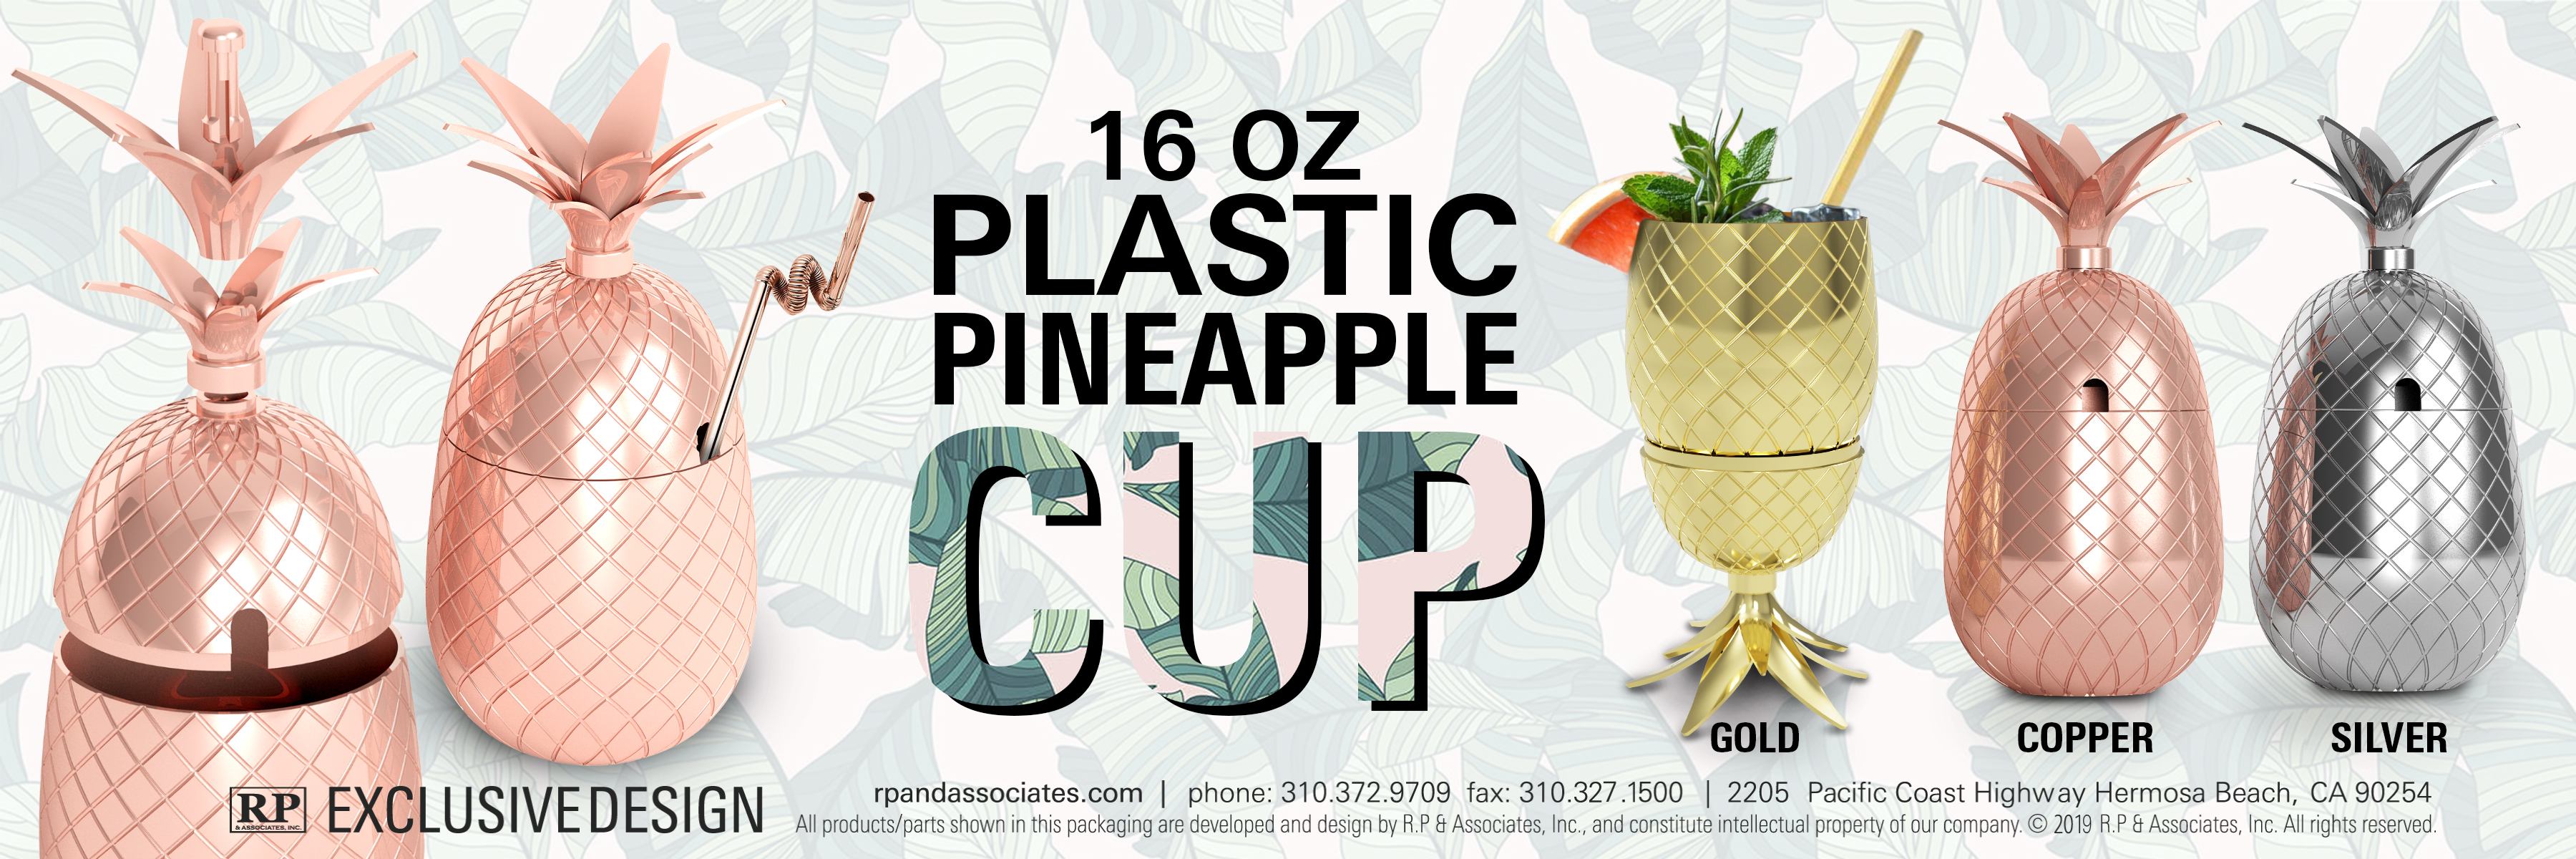 acrylic electroplated pineapple cup